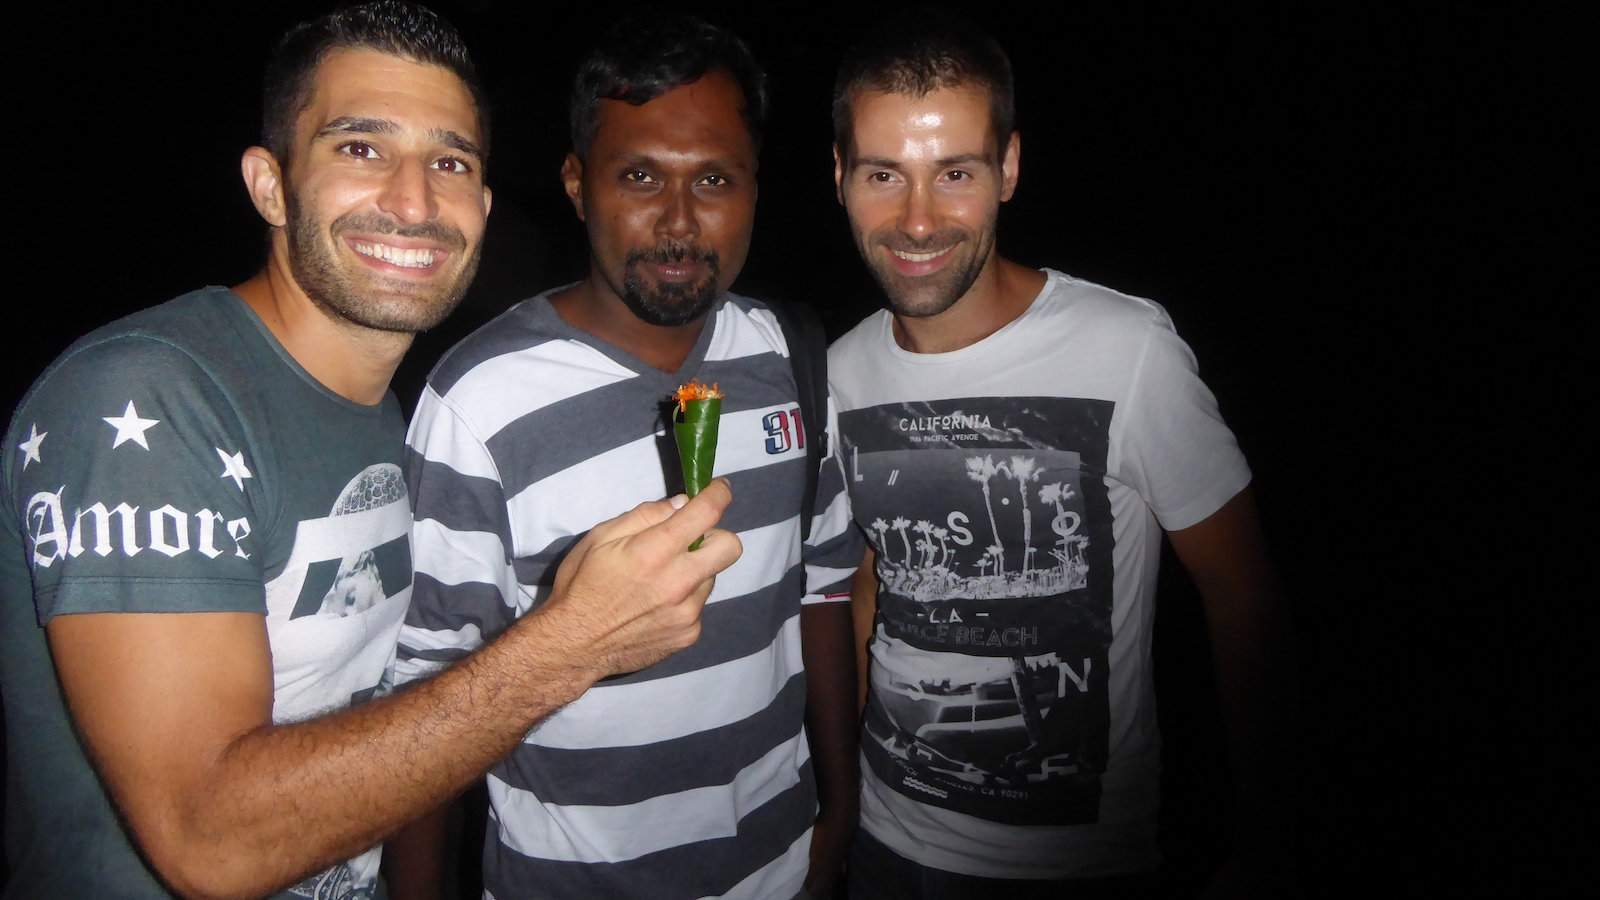 There are no official gay clubs in Colombo but we found some fun places to dance the night away